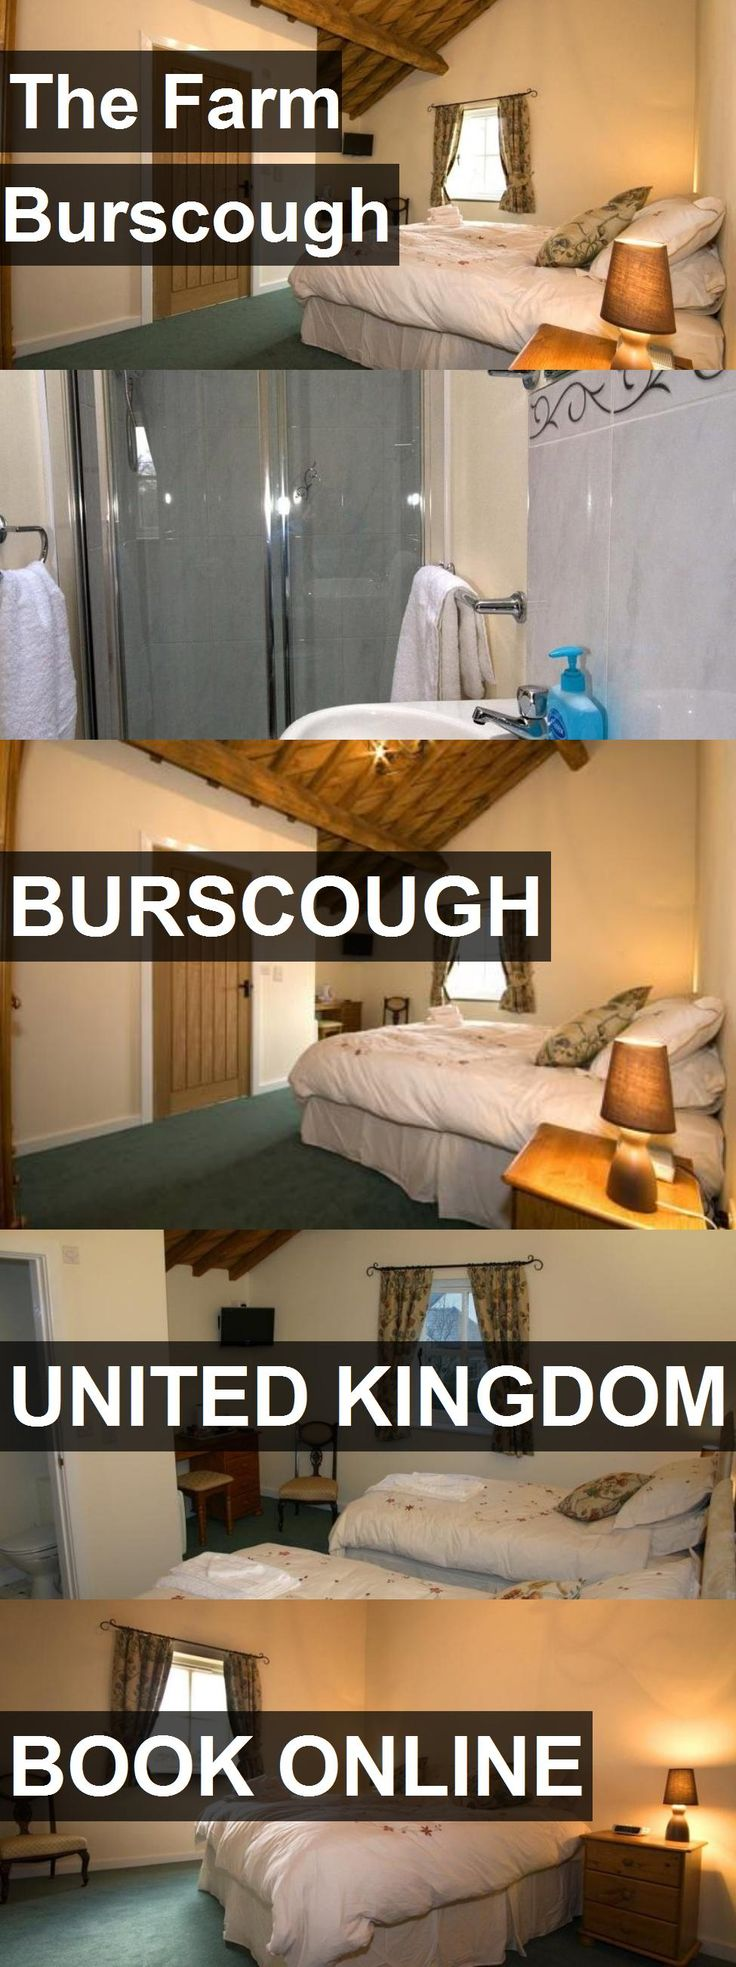 Hotel The Farm Burscough in Burscough, United Kingdom. For more information, photos, reviews and best prices please follow the link. #UnitedKingdom #Burscough #travel #vacation #hotel